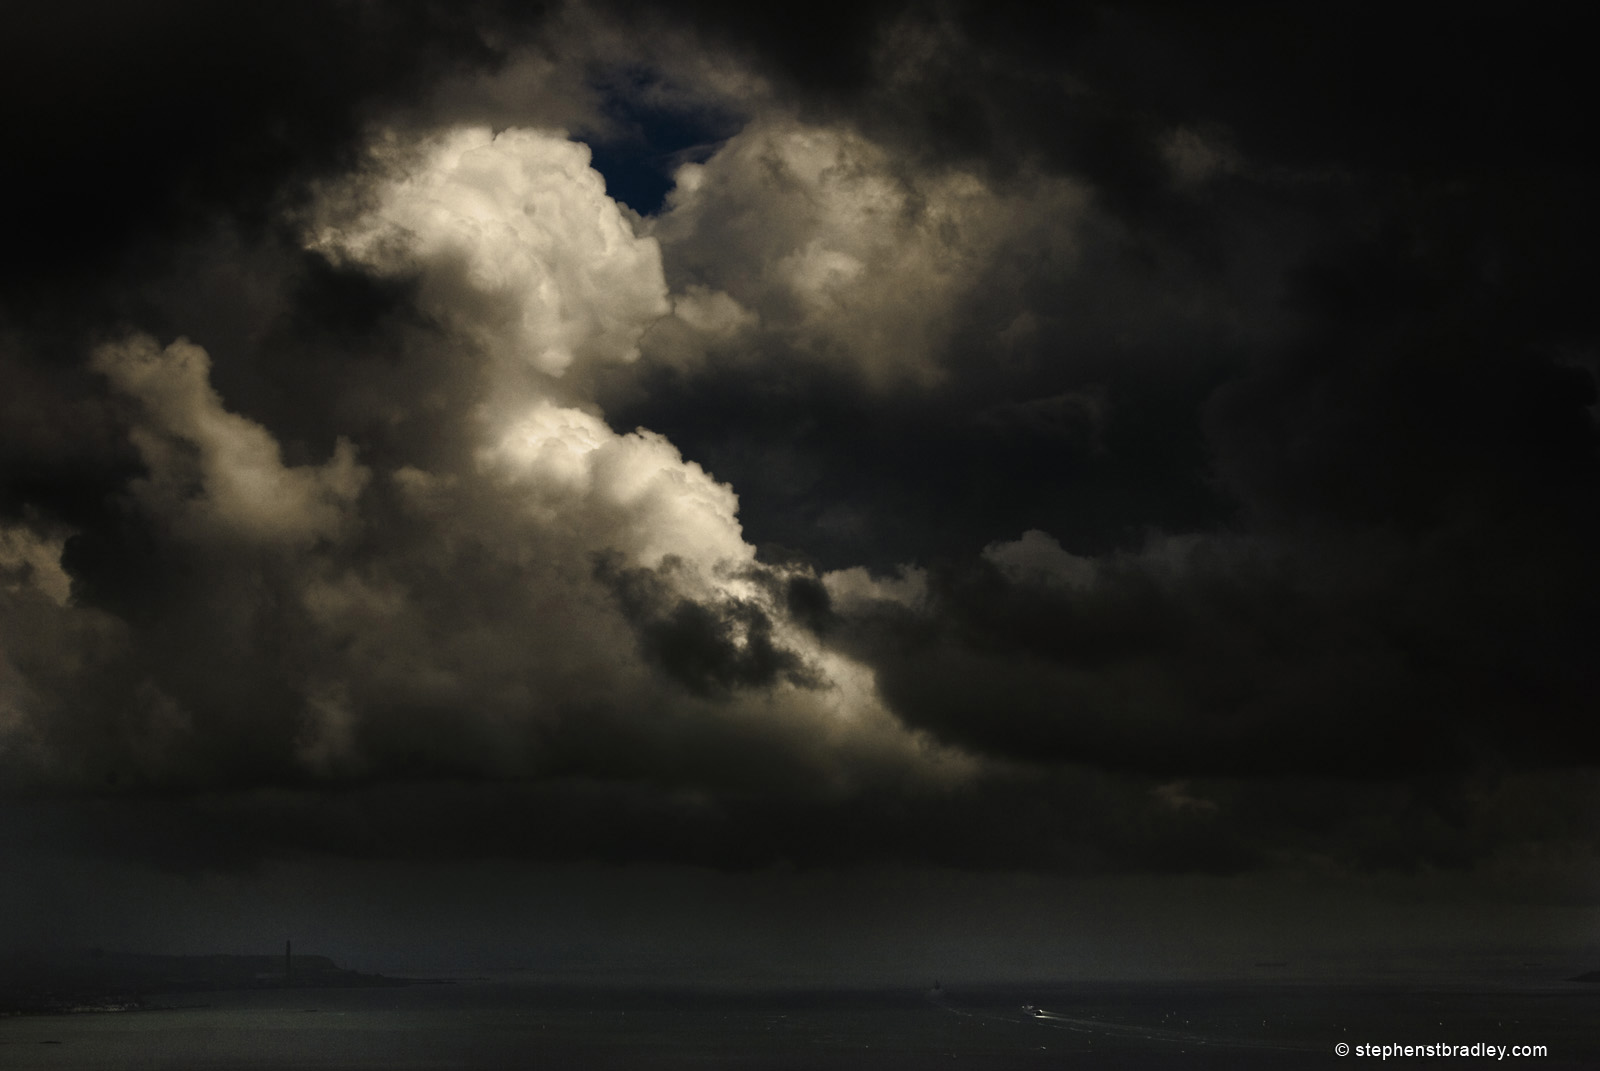 Belfast Lough beneath dramatic sky by Stephen Bradley, fine art photo 2658.